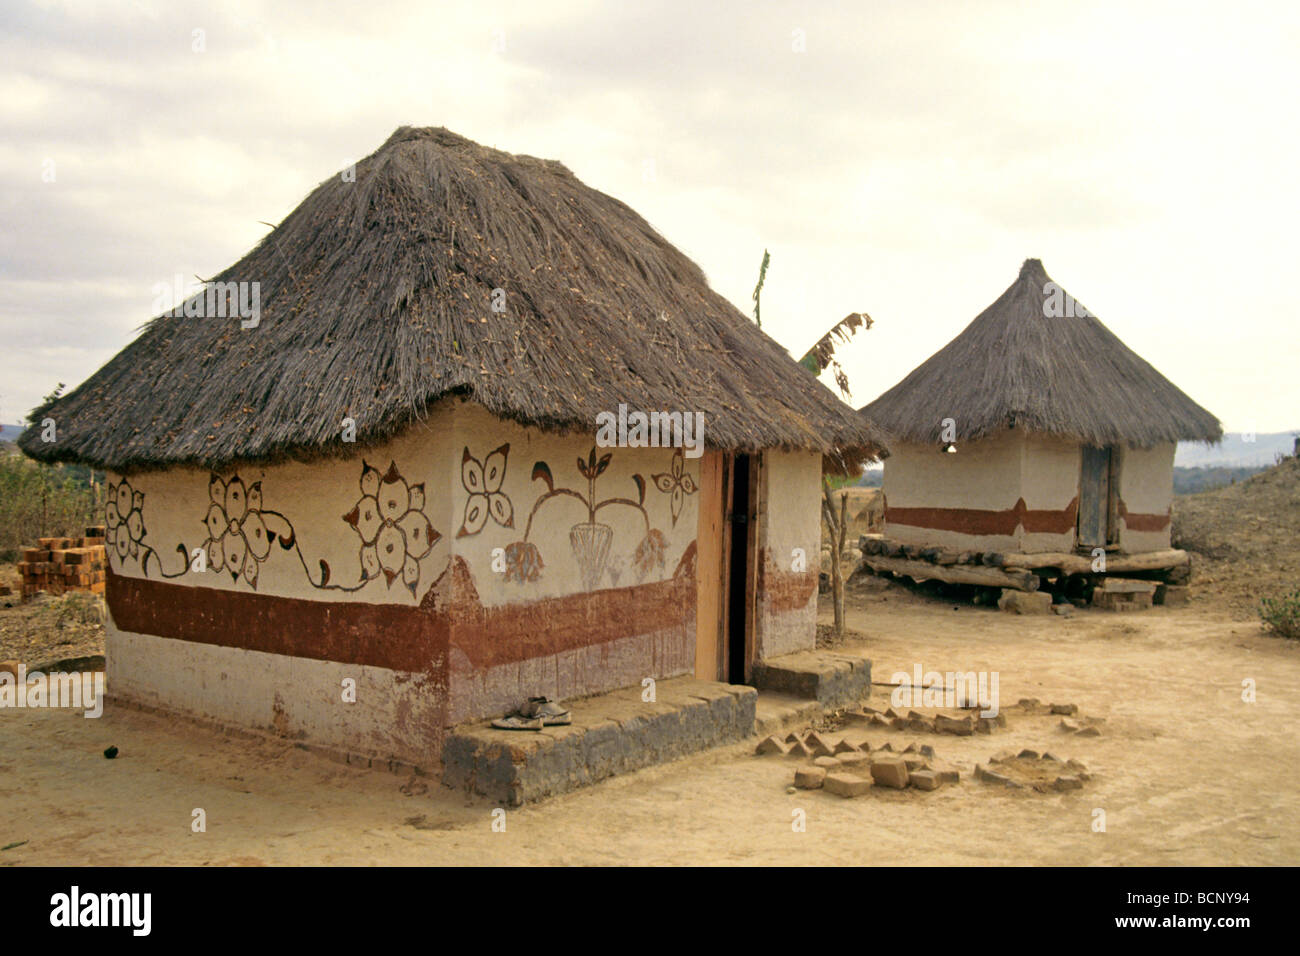 modern mobile homes with Stock Photo Zimbabwe Traditional House 25068656 on Nist Iot Standards also Stock Photo Zimbabwe Traditional House 25068656 in addition Over Loved Modern Conserving Rose Seidler House further bayareahome additionally Greg Louganis Back On Board b 3086380.